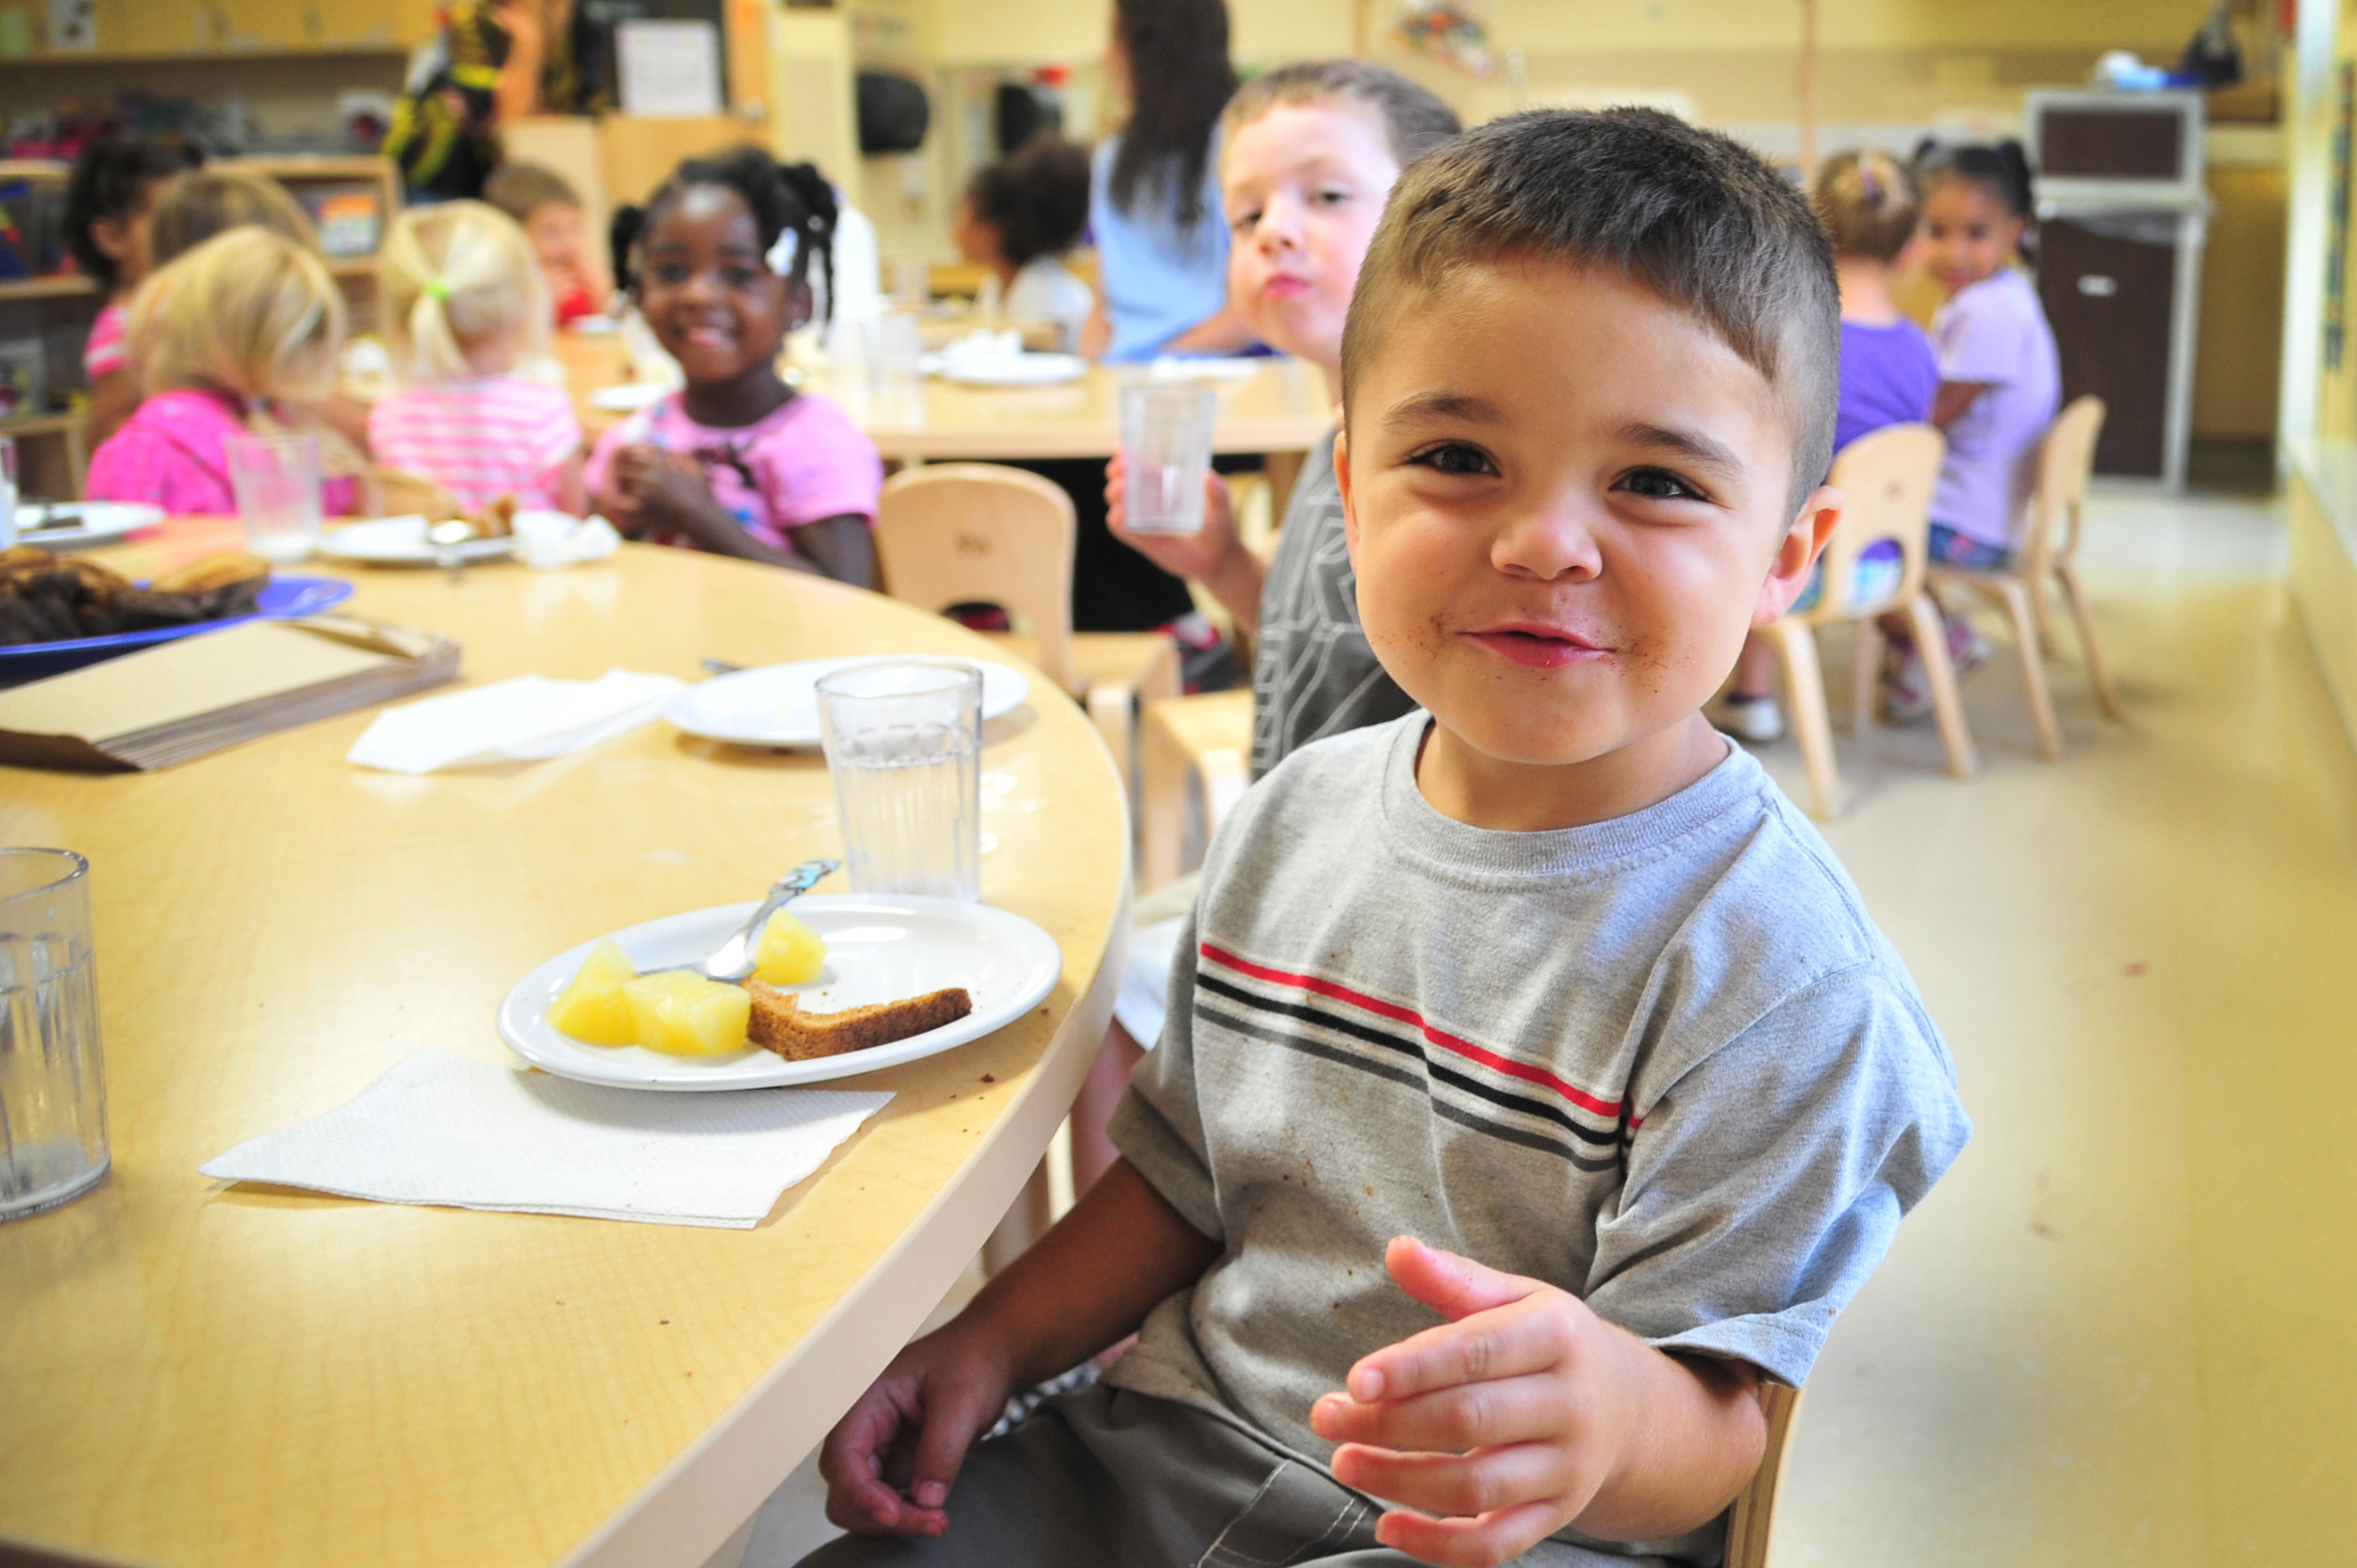 Lunch Time - Parents are welcome to eat with their children beginning Sept. 4.Kinder: 10:05 - 10:35 First: 10:40 - 11:10Second: 11:15 - 11:45 Third: 11:55 - 12:25Fourth: 12:25 - 12:55 Fifth: 12:55 - 1:25Apply for free or reduced lunch here.Fill up meal bank here.Set spending restrictions here by filling out the form, printing it out and bringing it to the school.